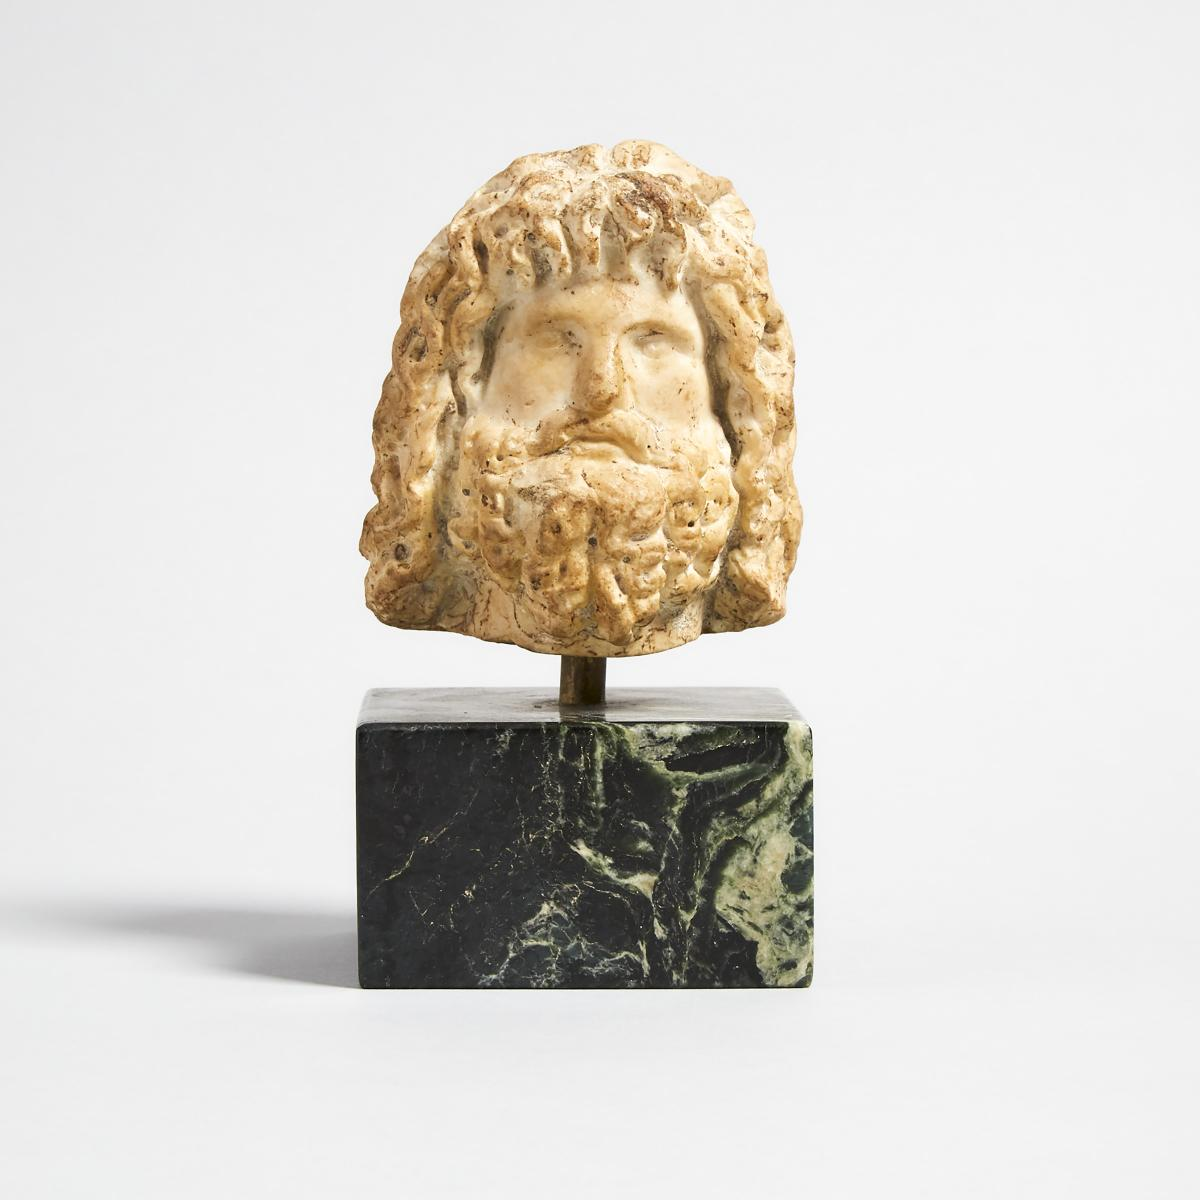 Roman Marble Head of Serapis, 2nd century A.D., head height 4.1 in — 10.4 cm; 6.75 in — 17.1 cm